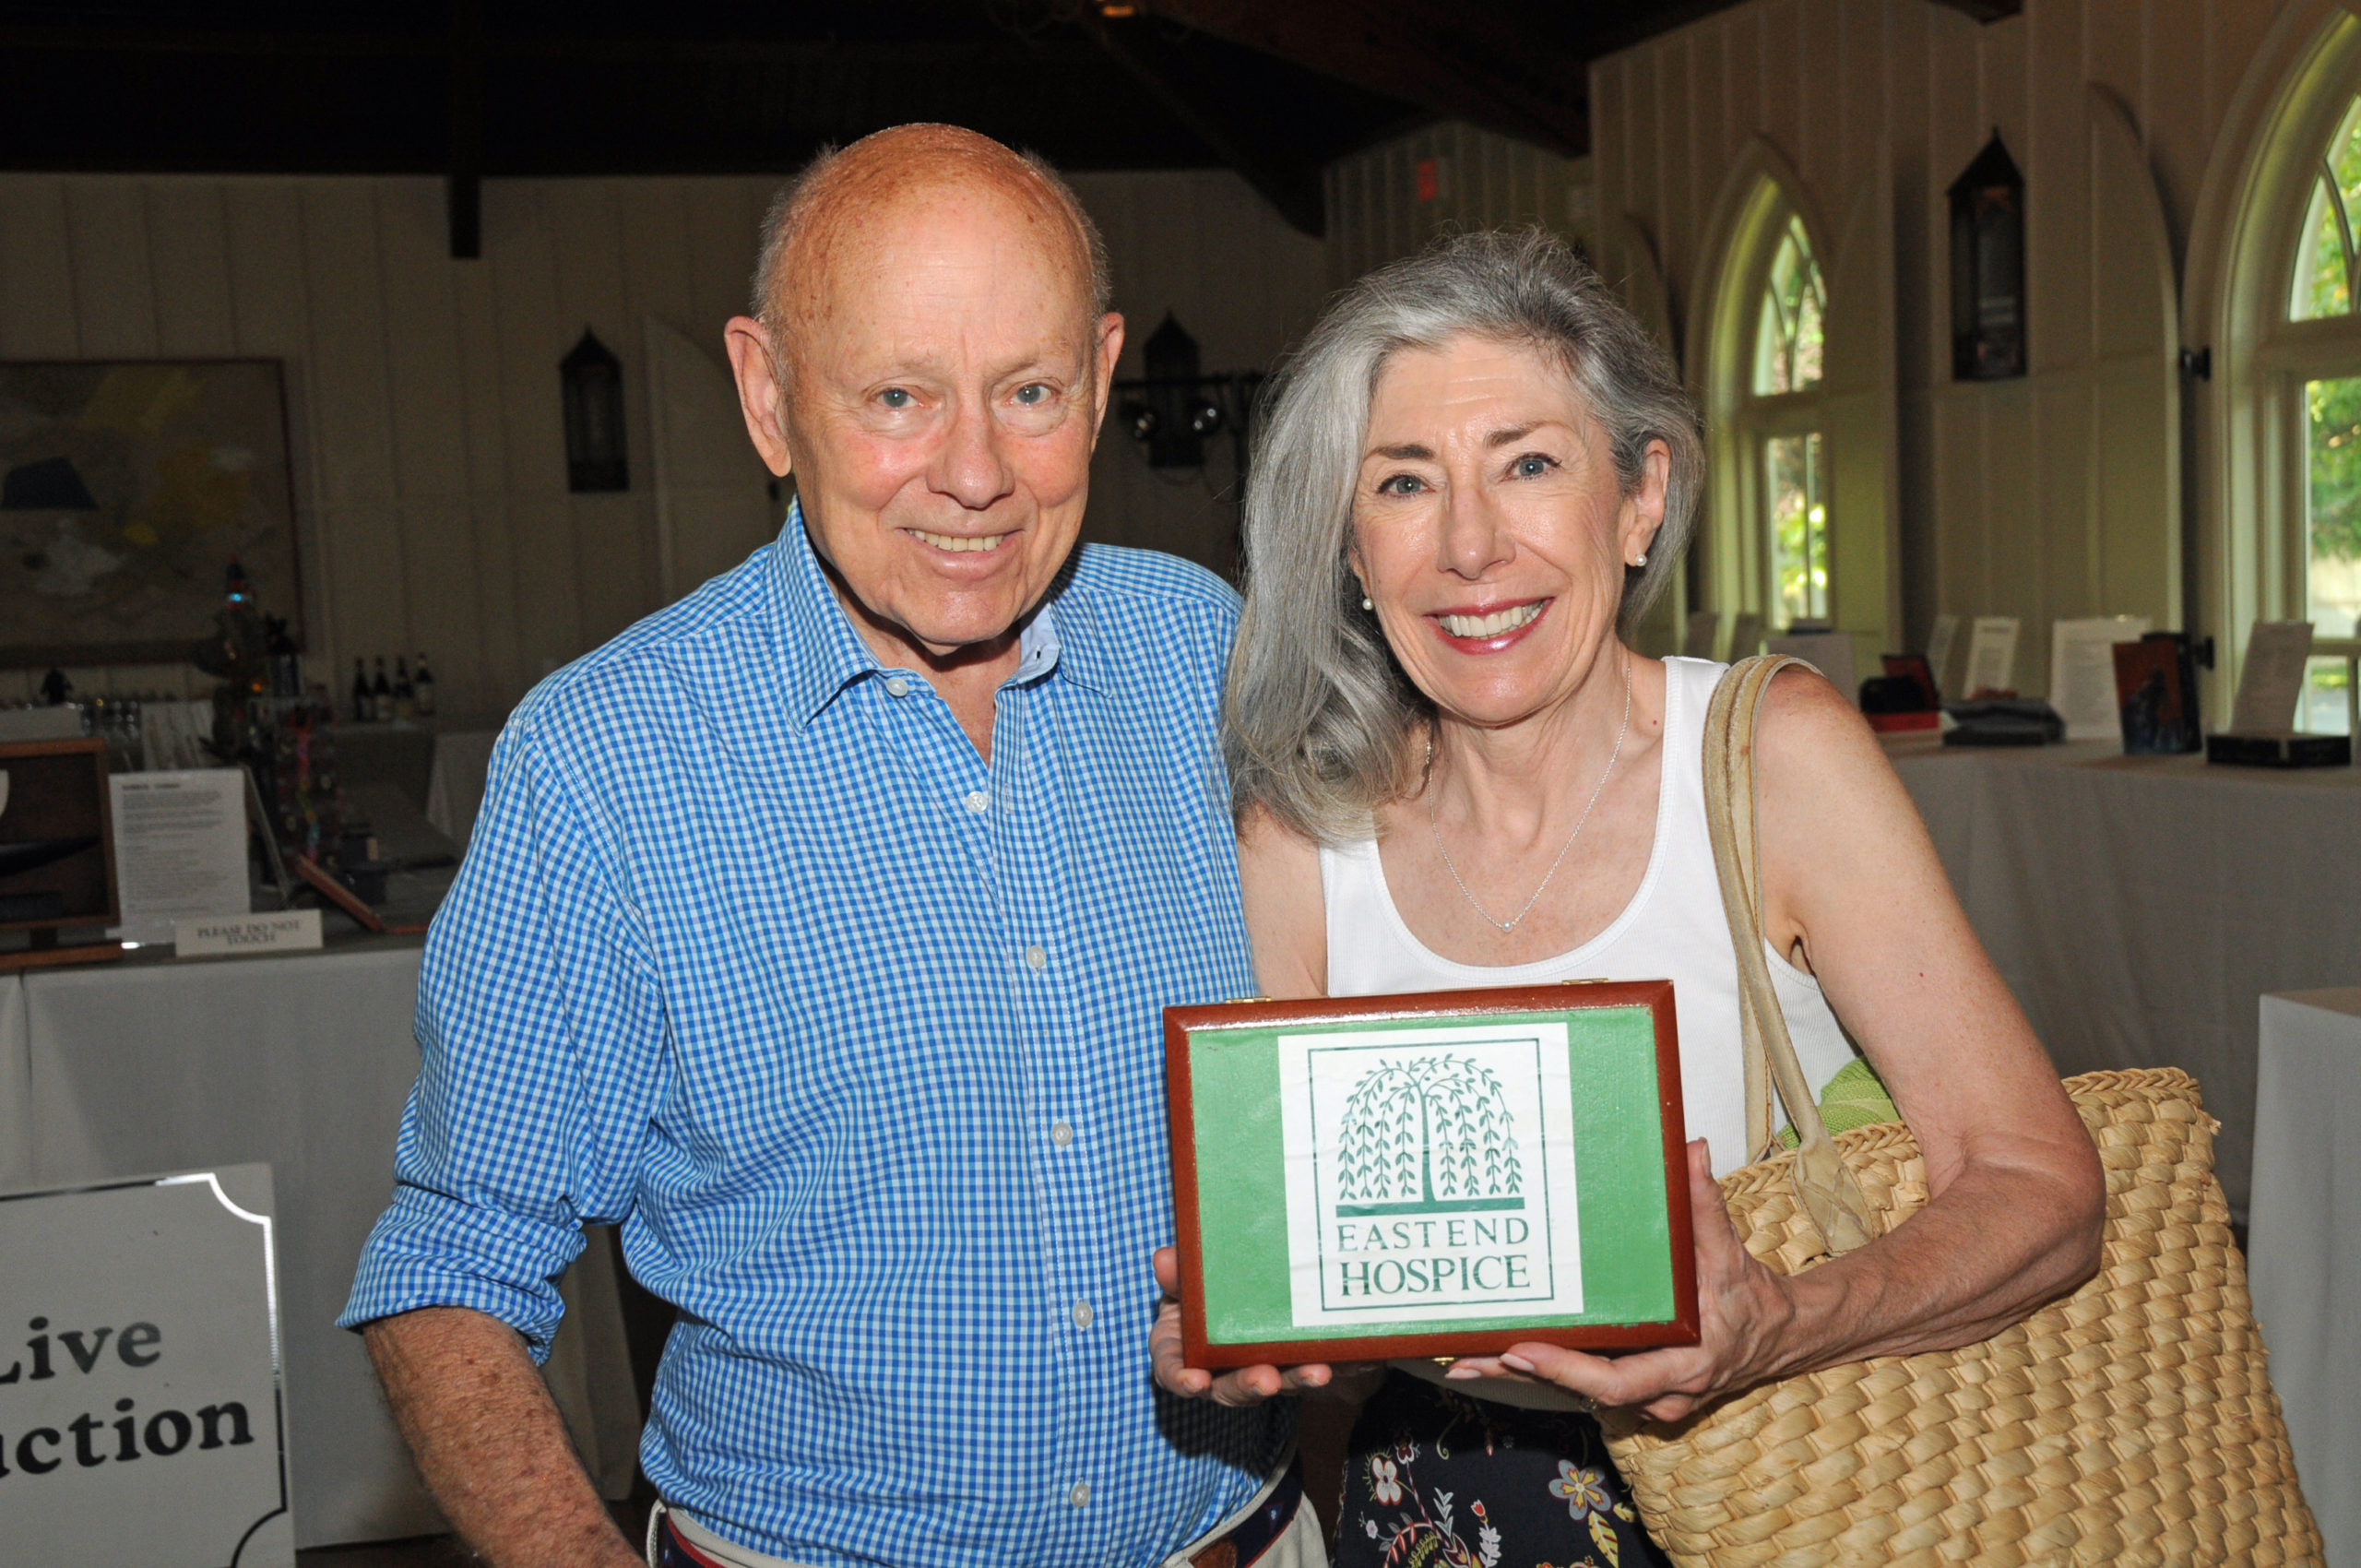 Ted David and Louise Merriman at the East End Hospice Art Box Auction preview on Thursday evening at at Hoie Hall in St. Luke's Episcopal Church in East Hampton. More than 80 decorated boxes were auctioned on Saturday to benefit East End Hospice.    RICHARD LEWIN